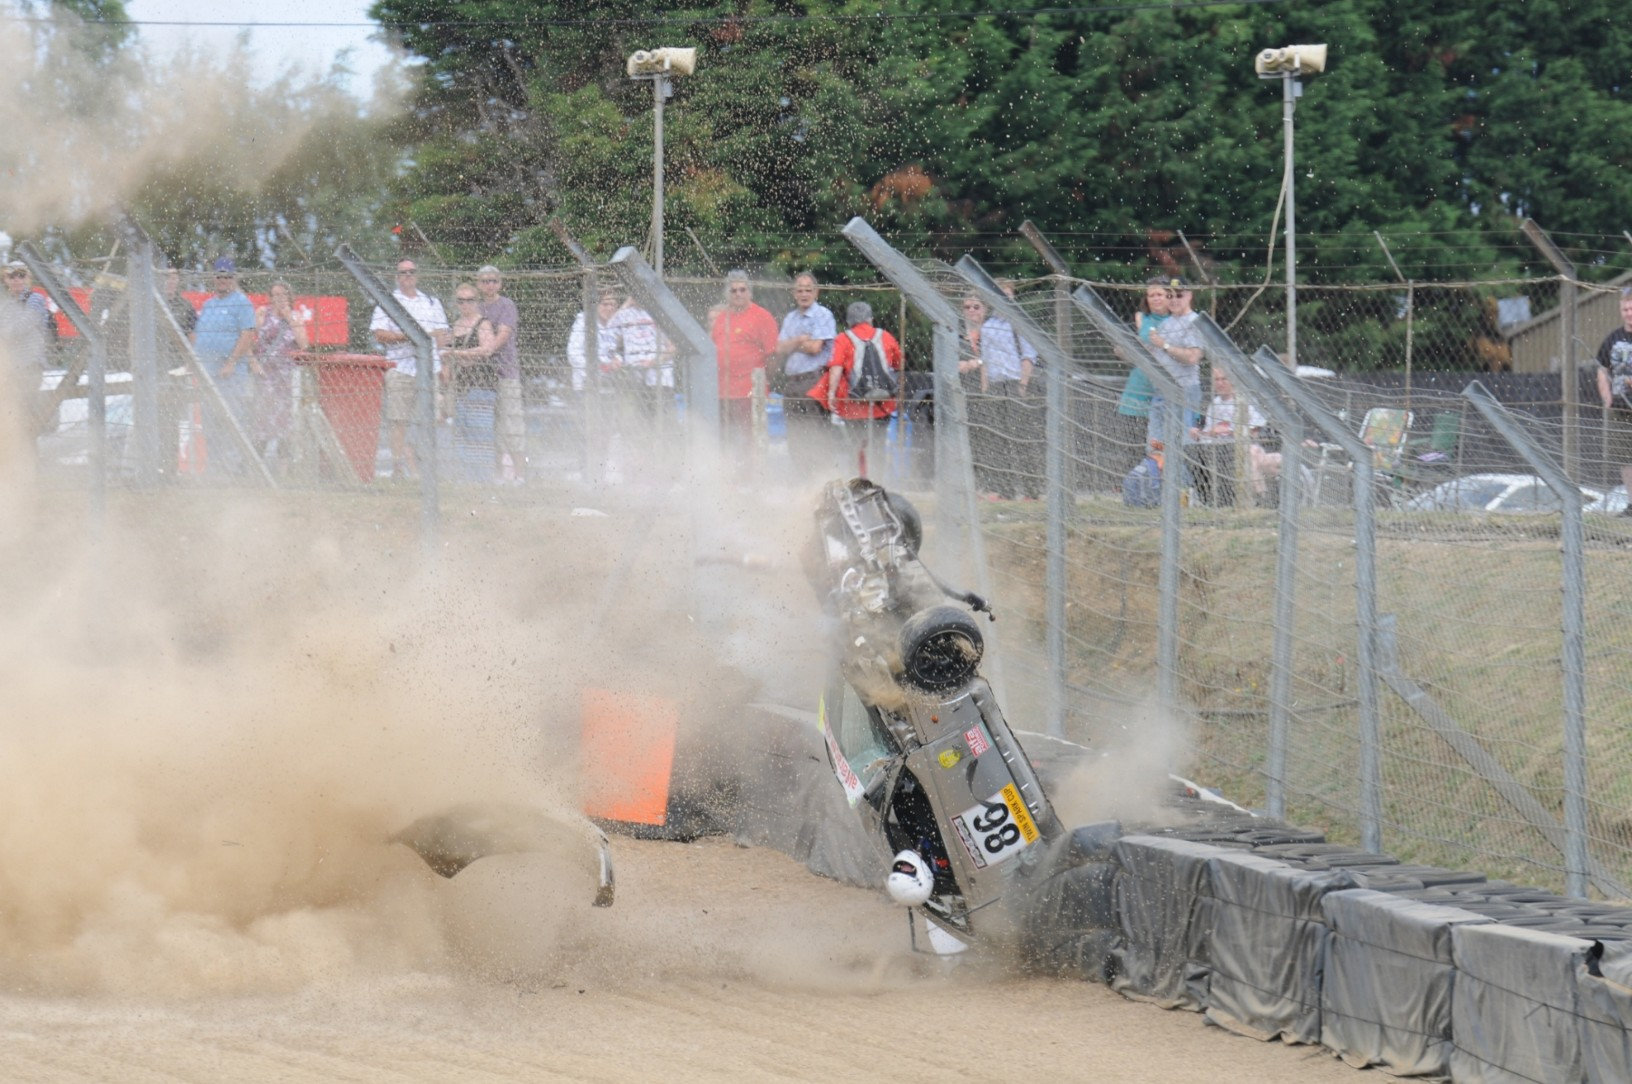 Incredible Moment Racing Driver Survives Crash With Head Out Of Window SWNS CRASH ROLL 10